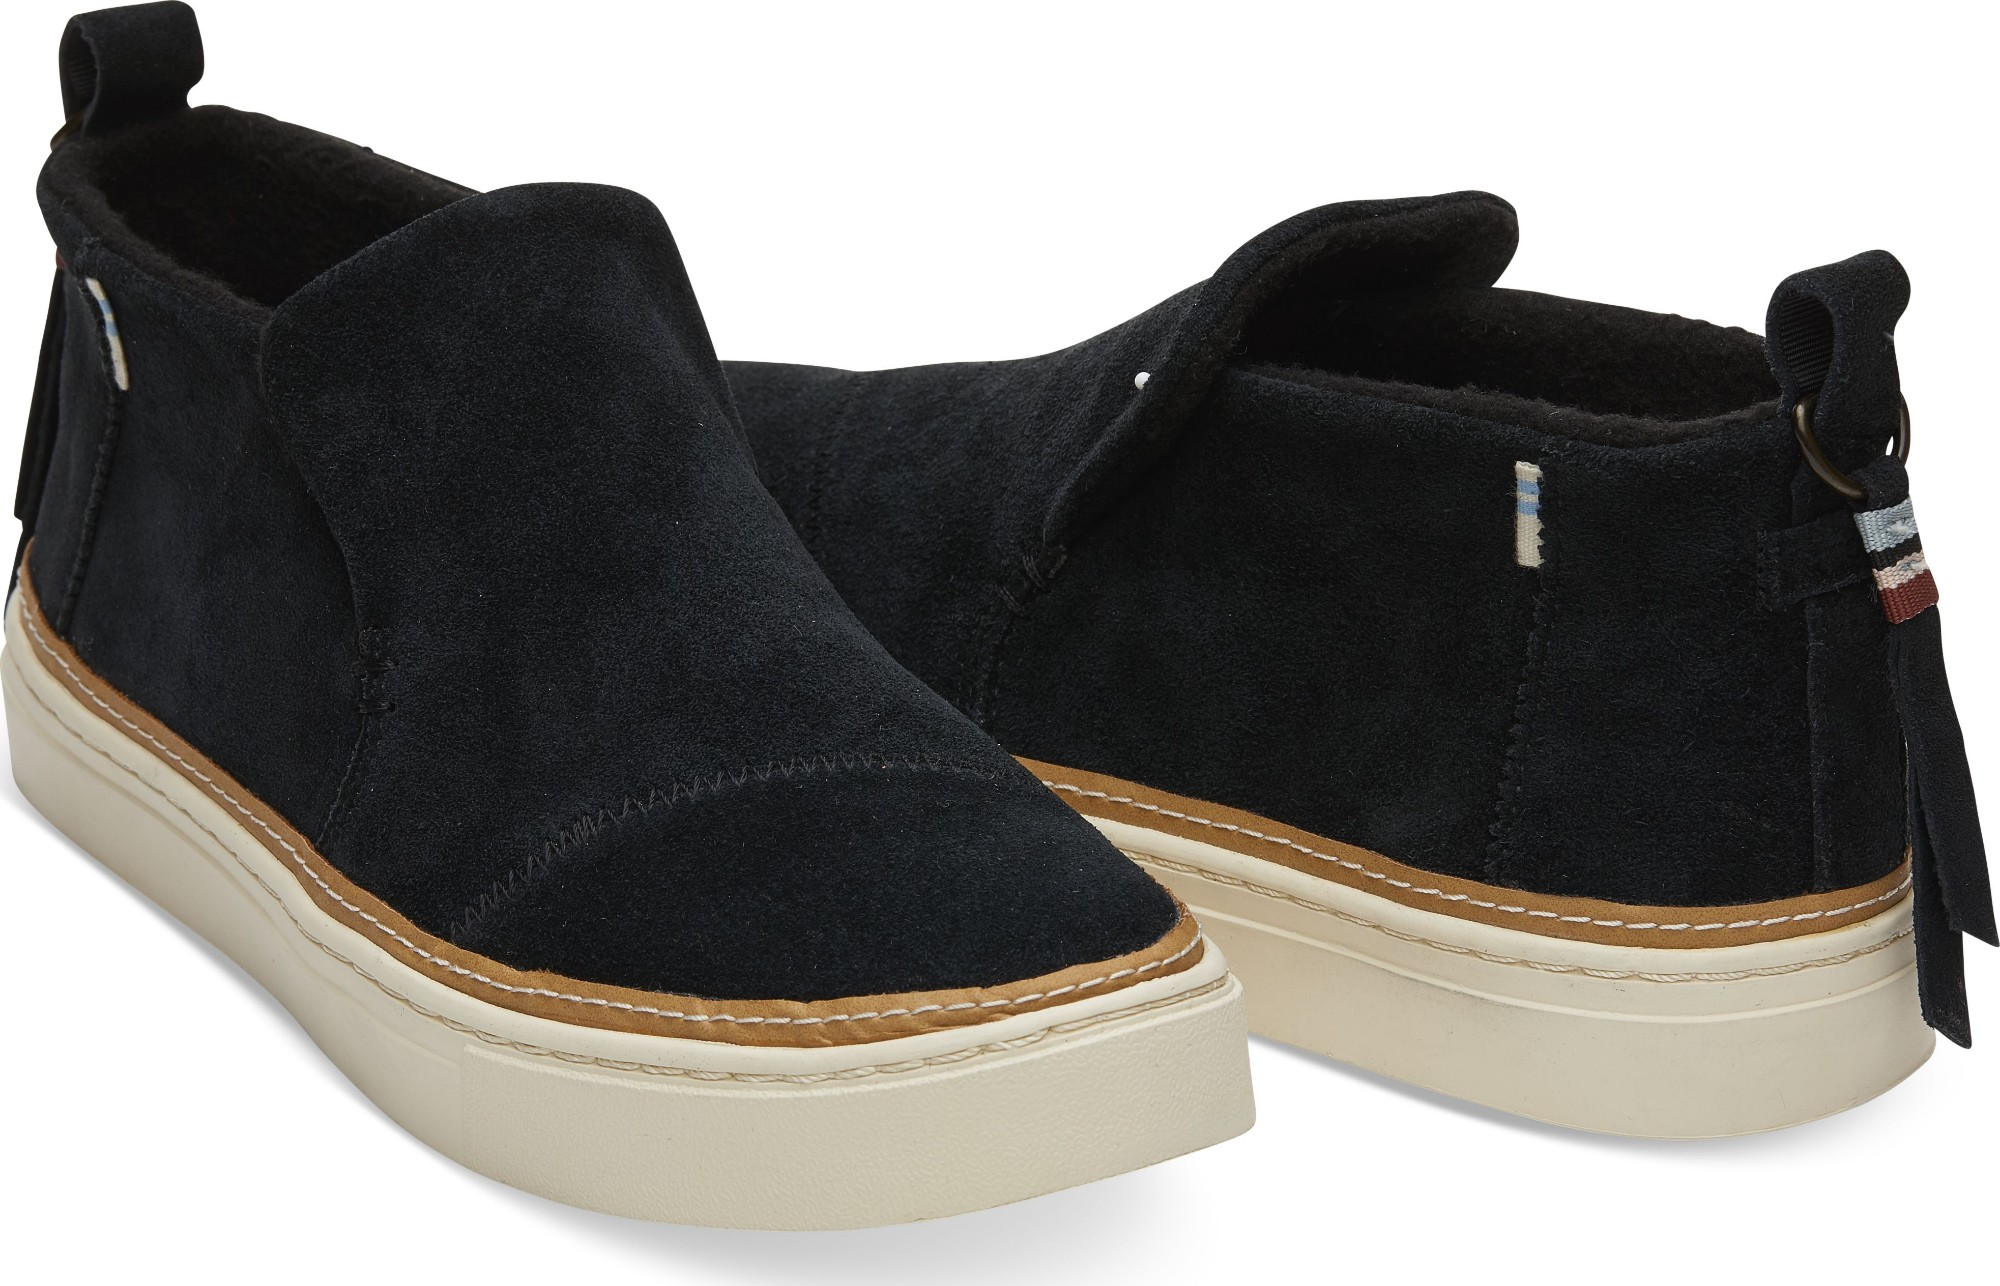 79fc5bc78f0 ... Black TOMS Suede Water Resistant Women s Paxton Slipon ...